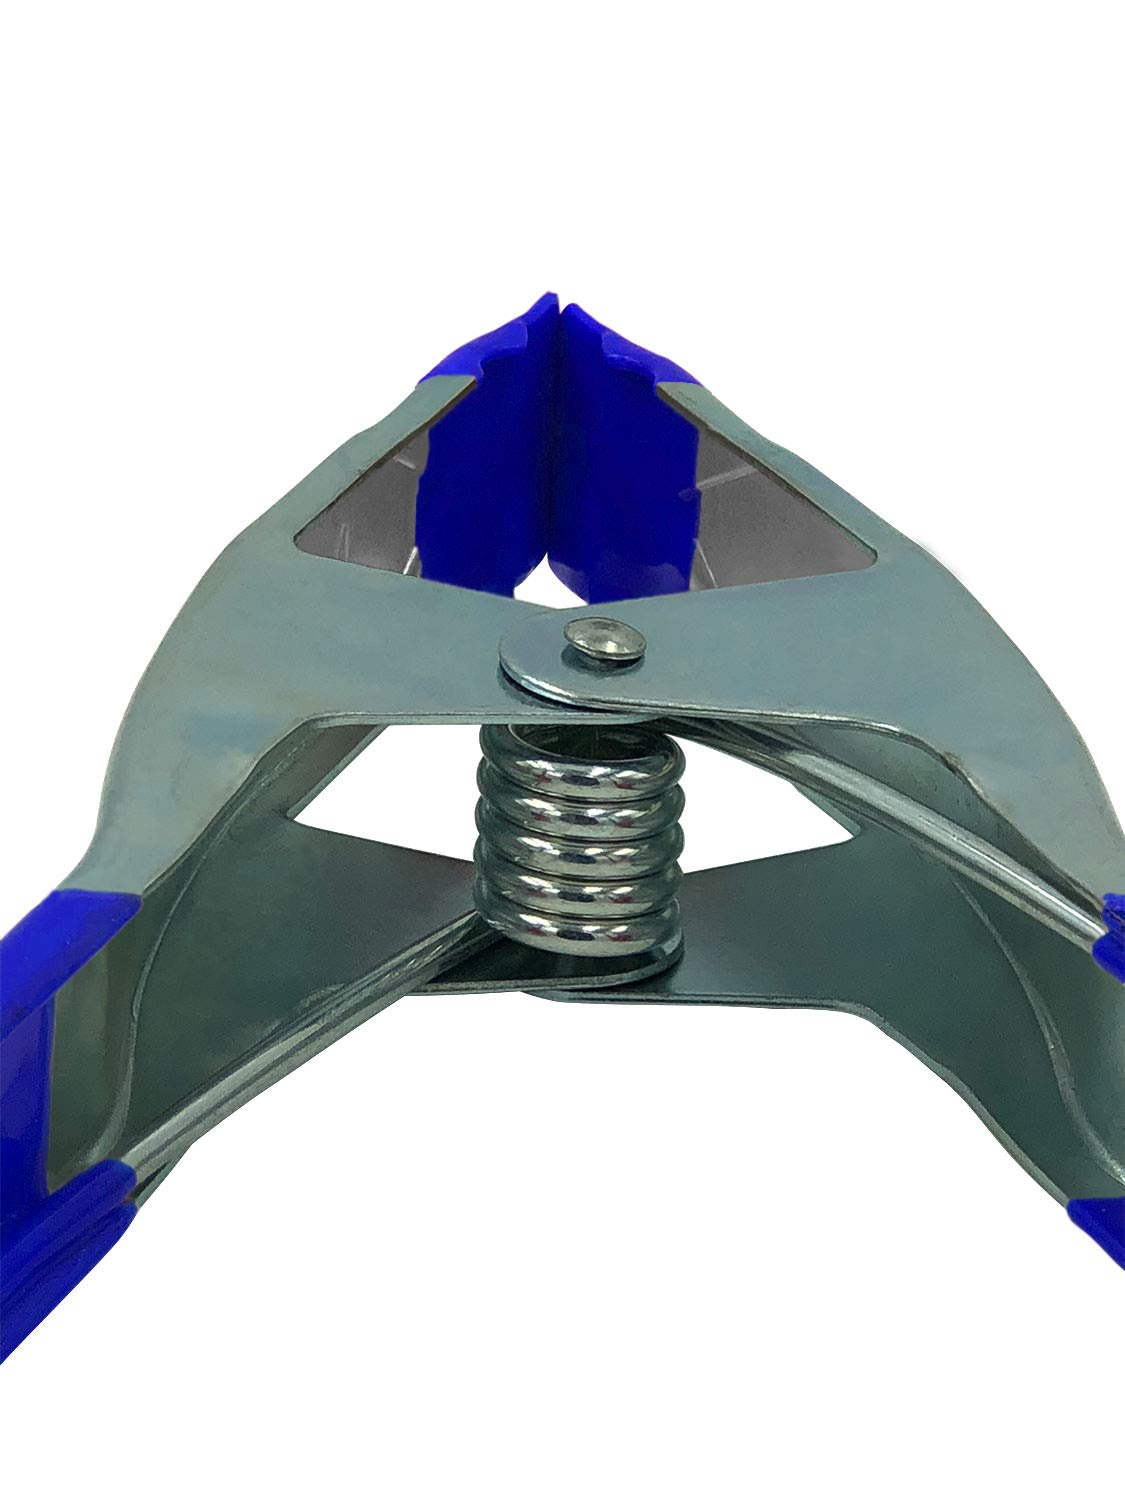 Lot of 12, 9'' inch Spring Clamp Supersize Heavy Duty Spring Metal Blue Tip by FactorDuty (Image #4)